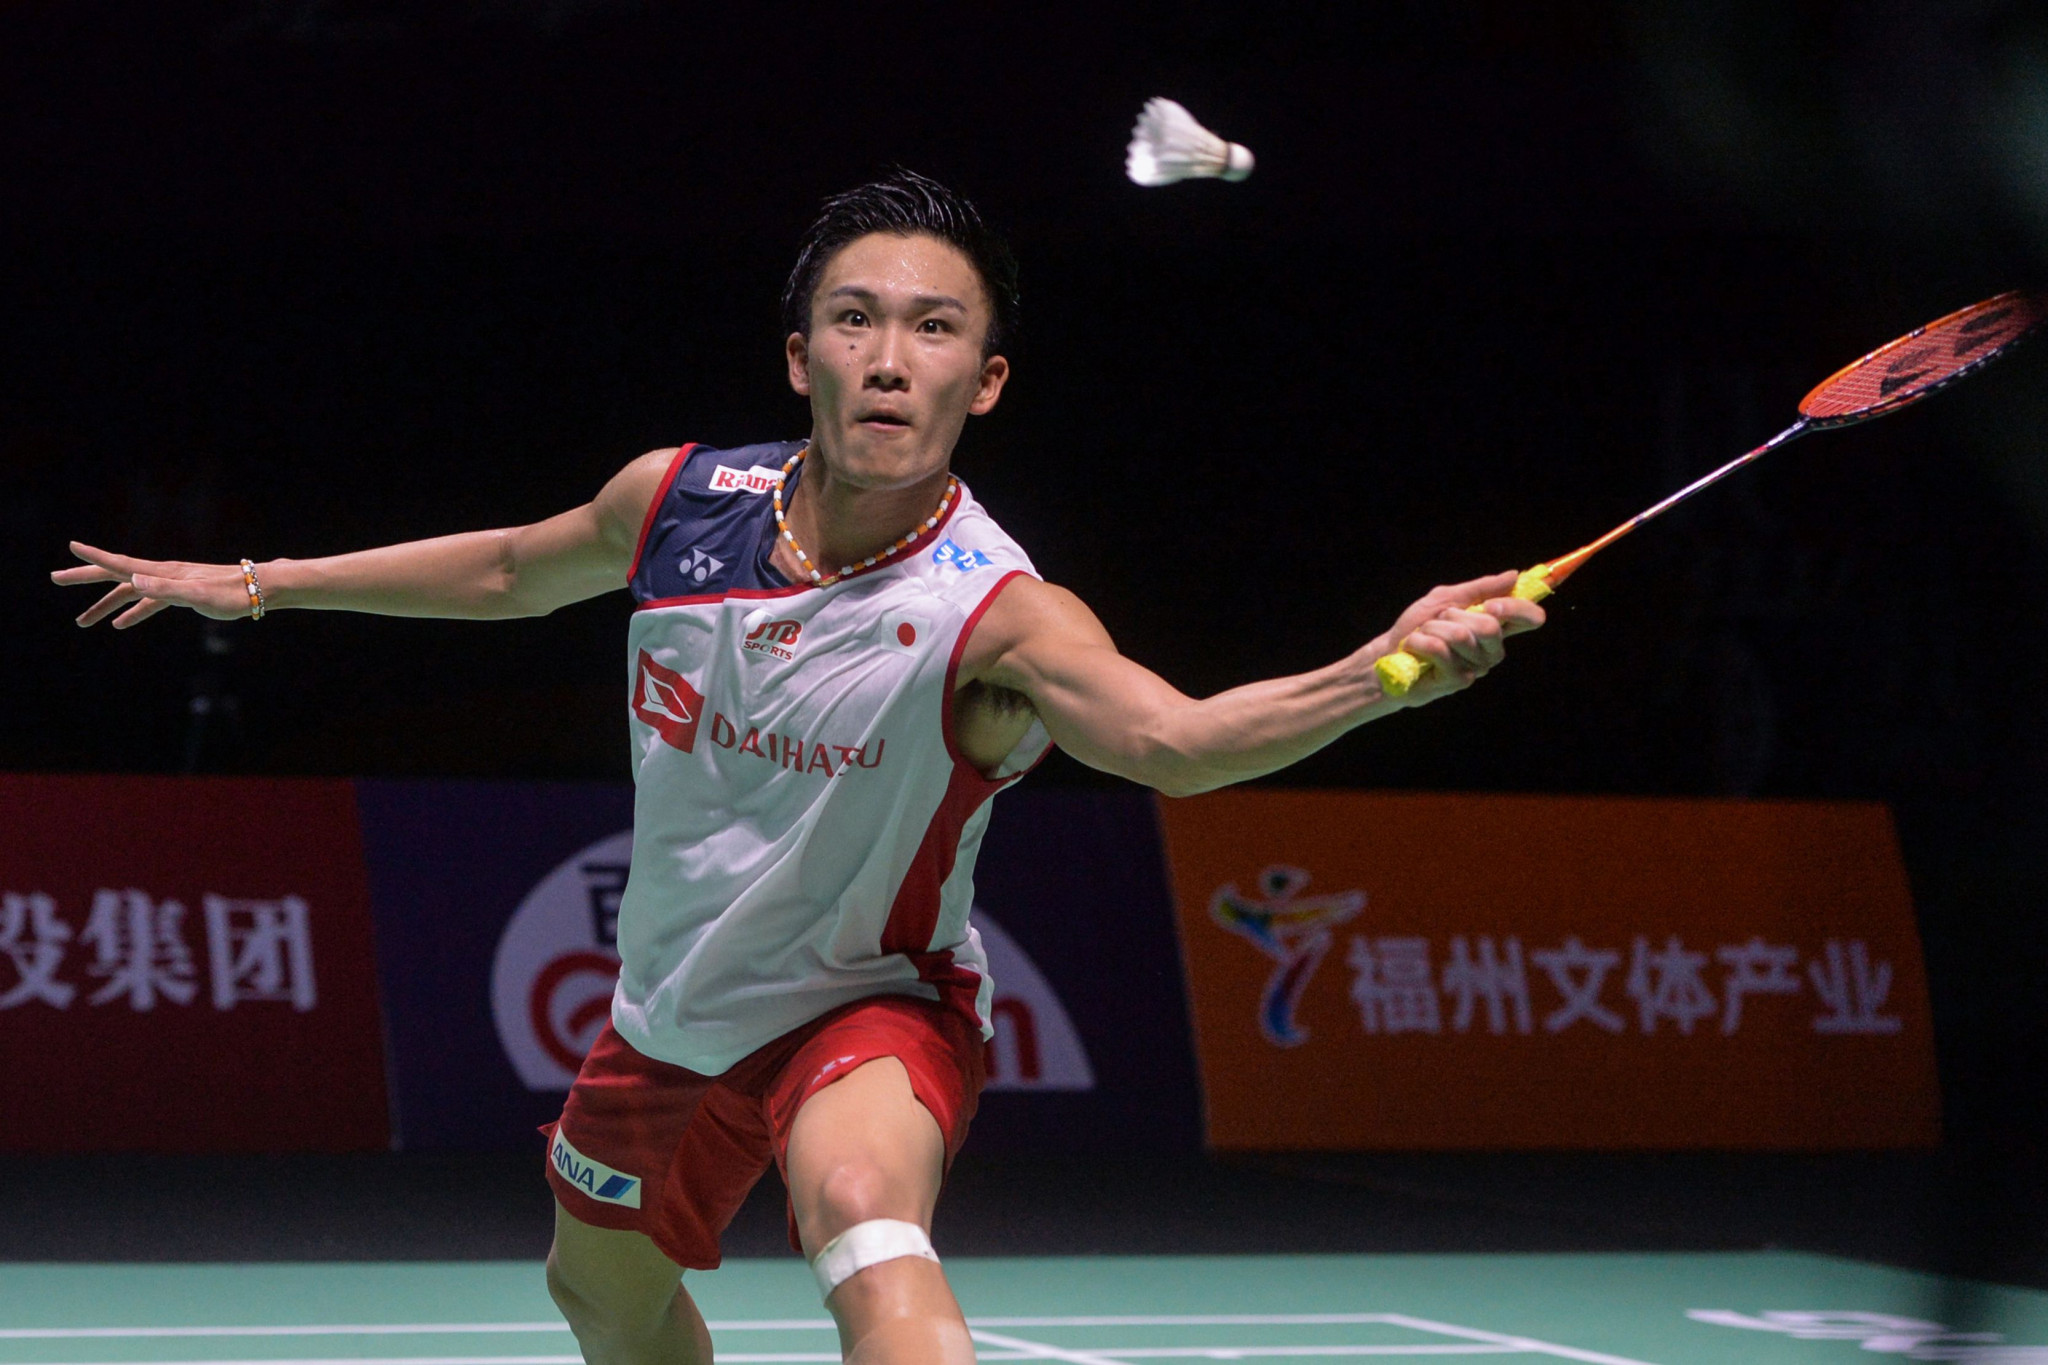 Japan's Kento Momota has won four BWF World Tour titles this year already, been crowned world champion and is now in the quarter-finals of the Hong Kong Open ©Getty Images